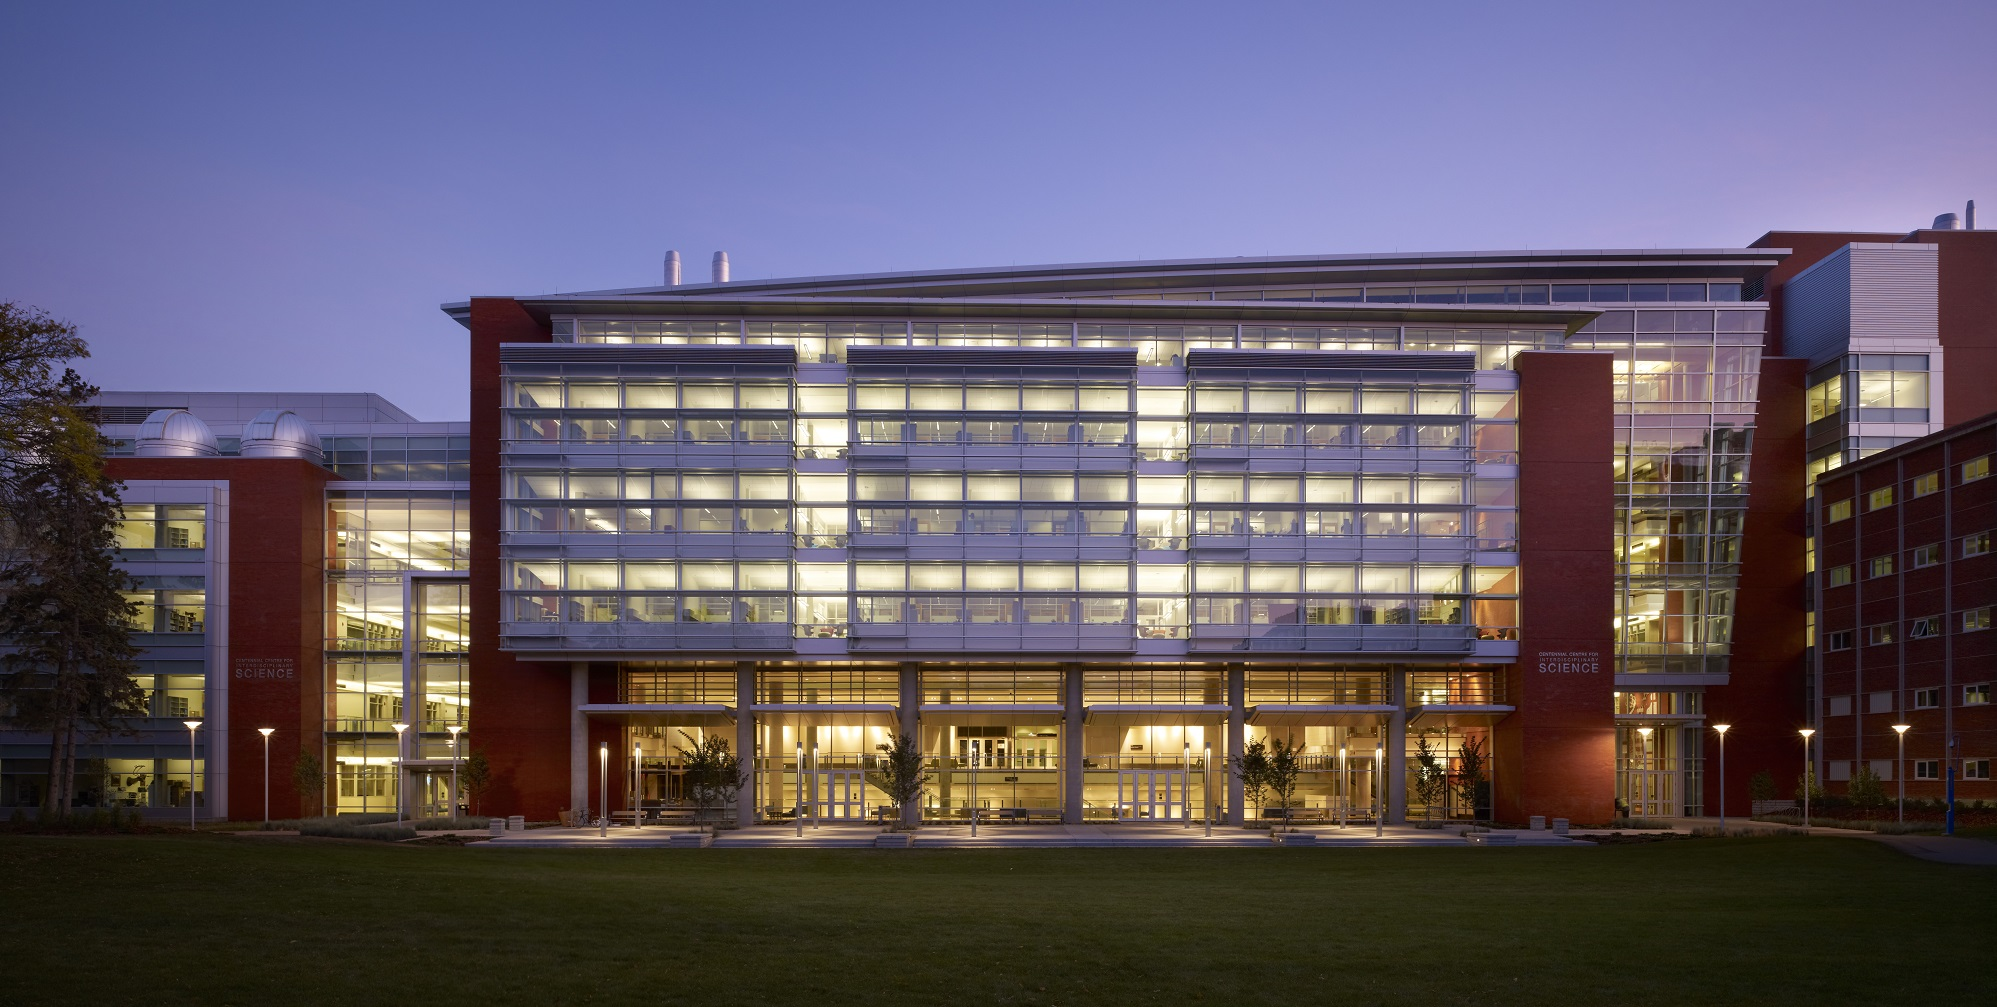 CCIS building lit up at night on the University of Alberta Quad